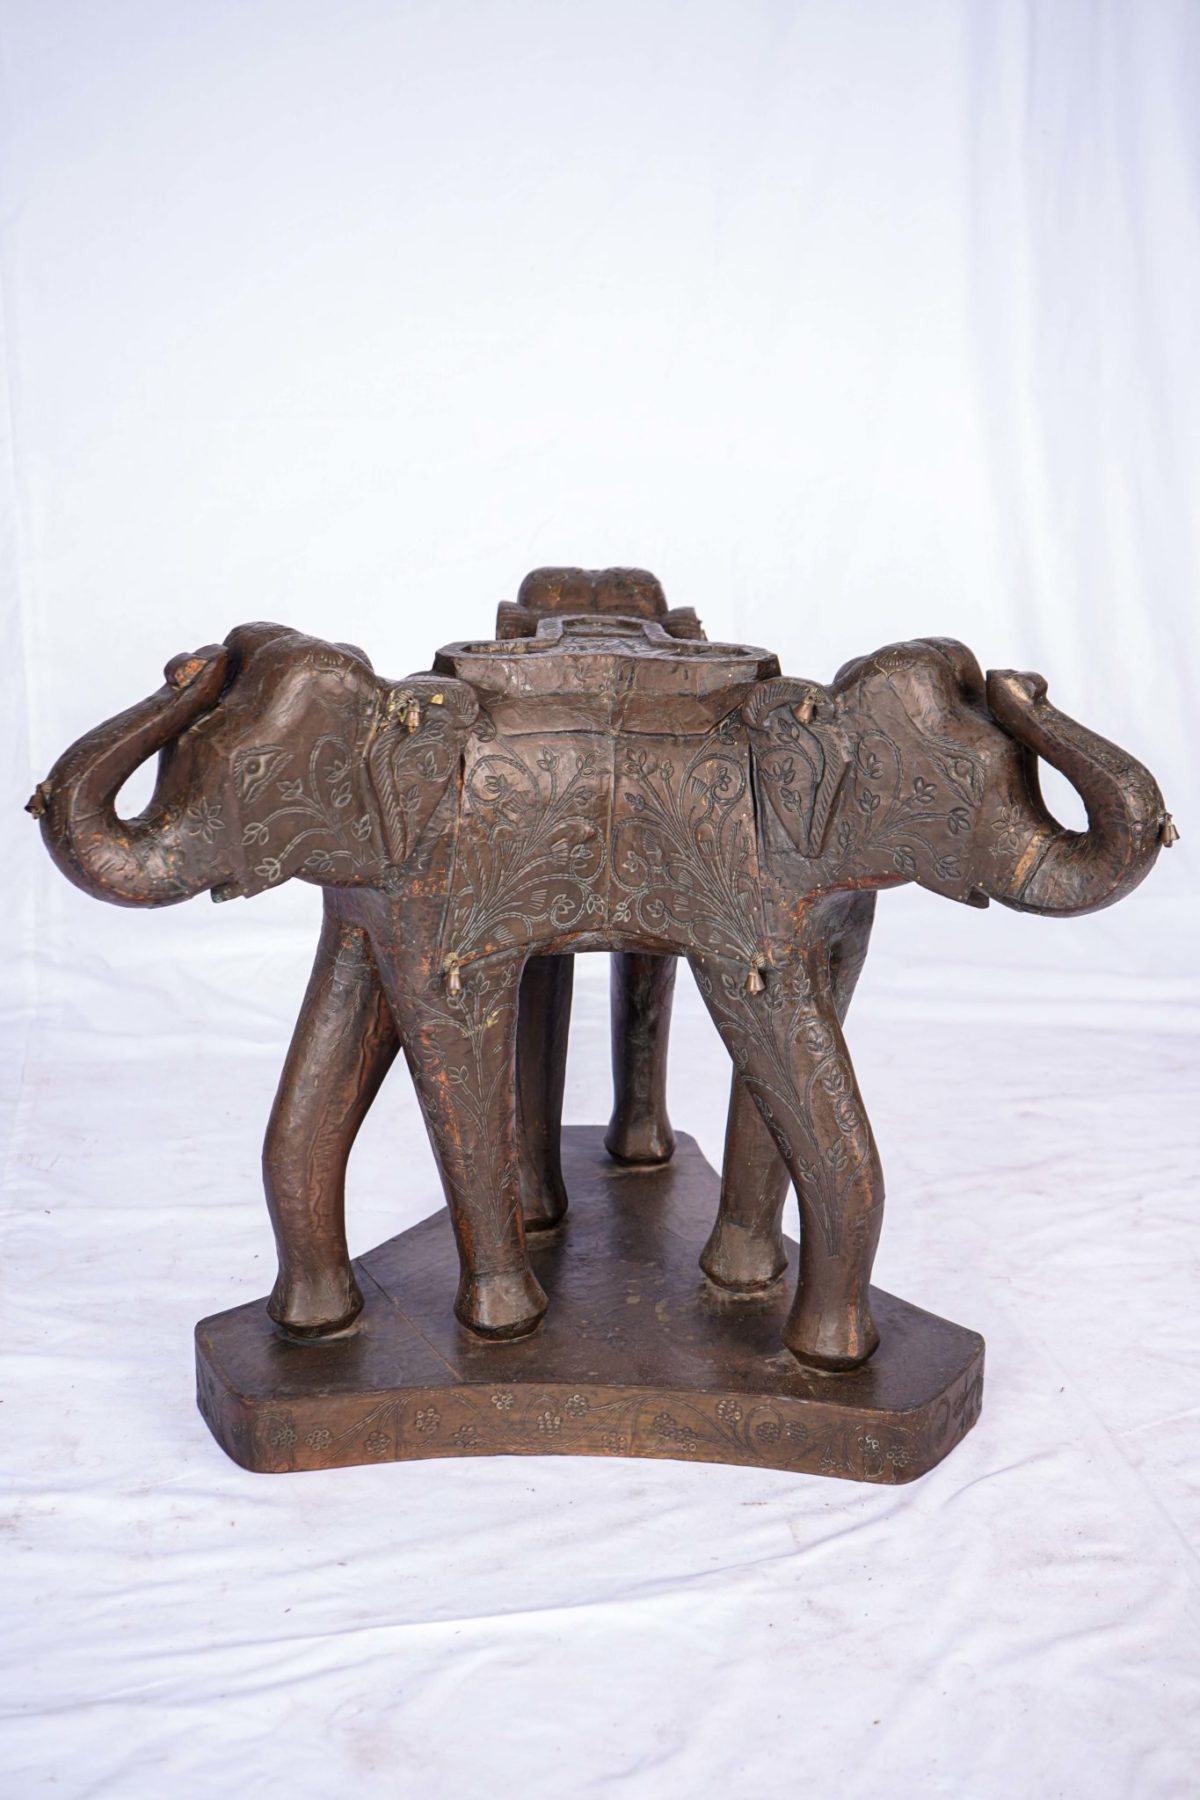 Stand for Table Hand Crafted in Wood from India